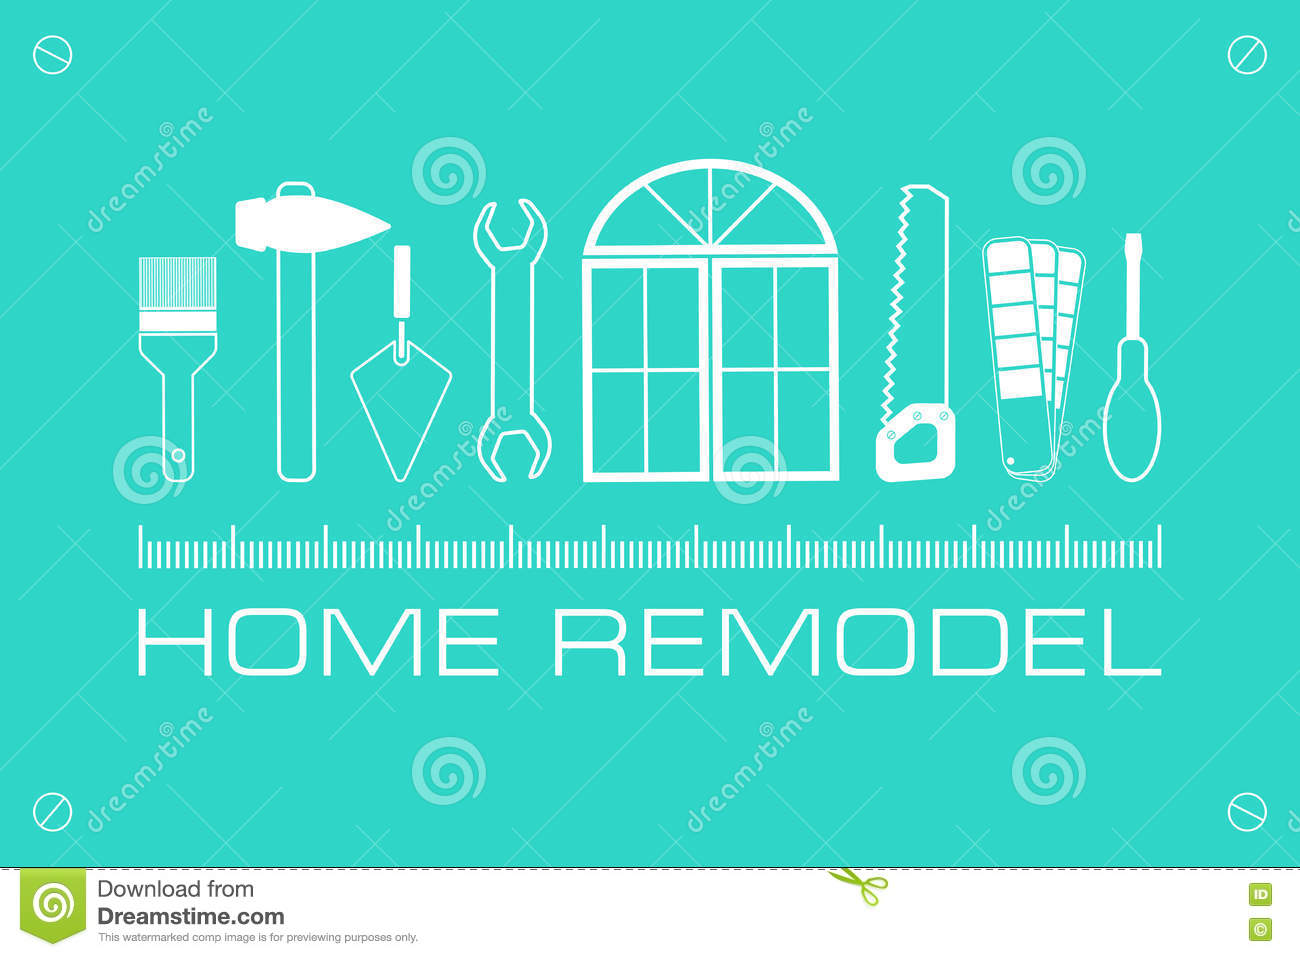 Home remodeling logo remodeling logo clipart - Construction Home Icons Logo Remodel